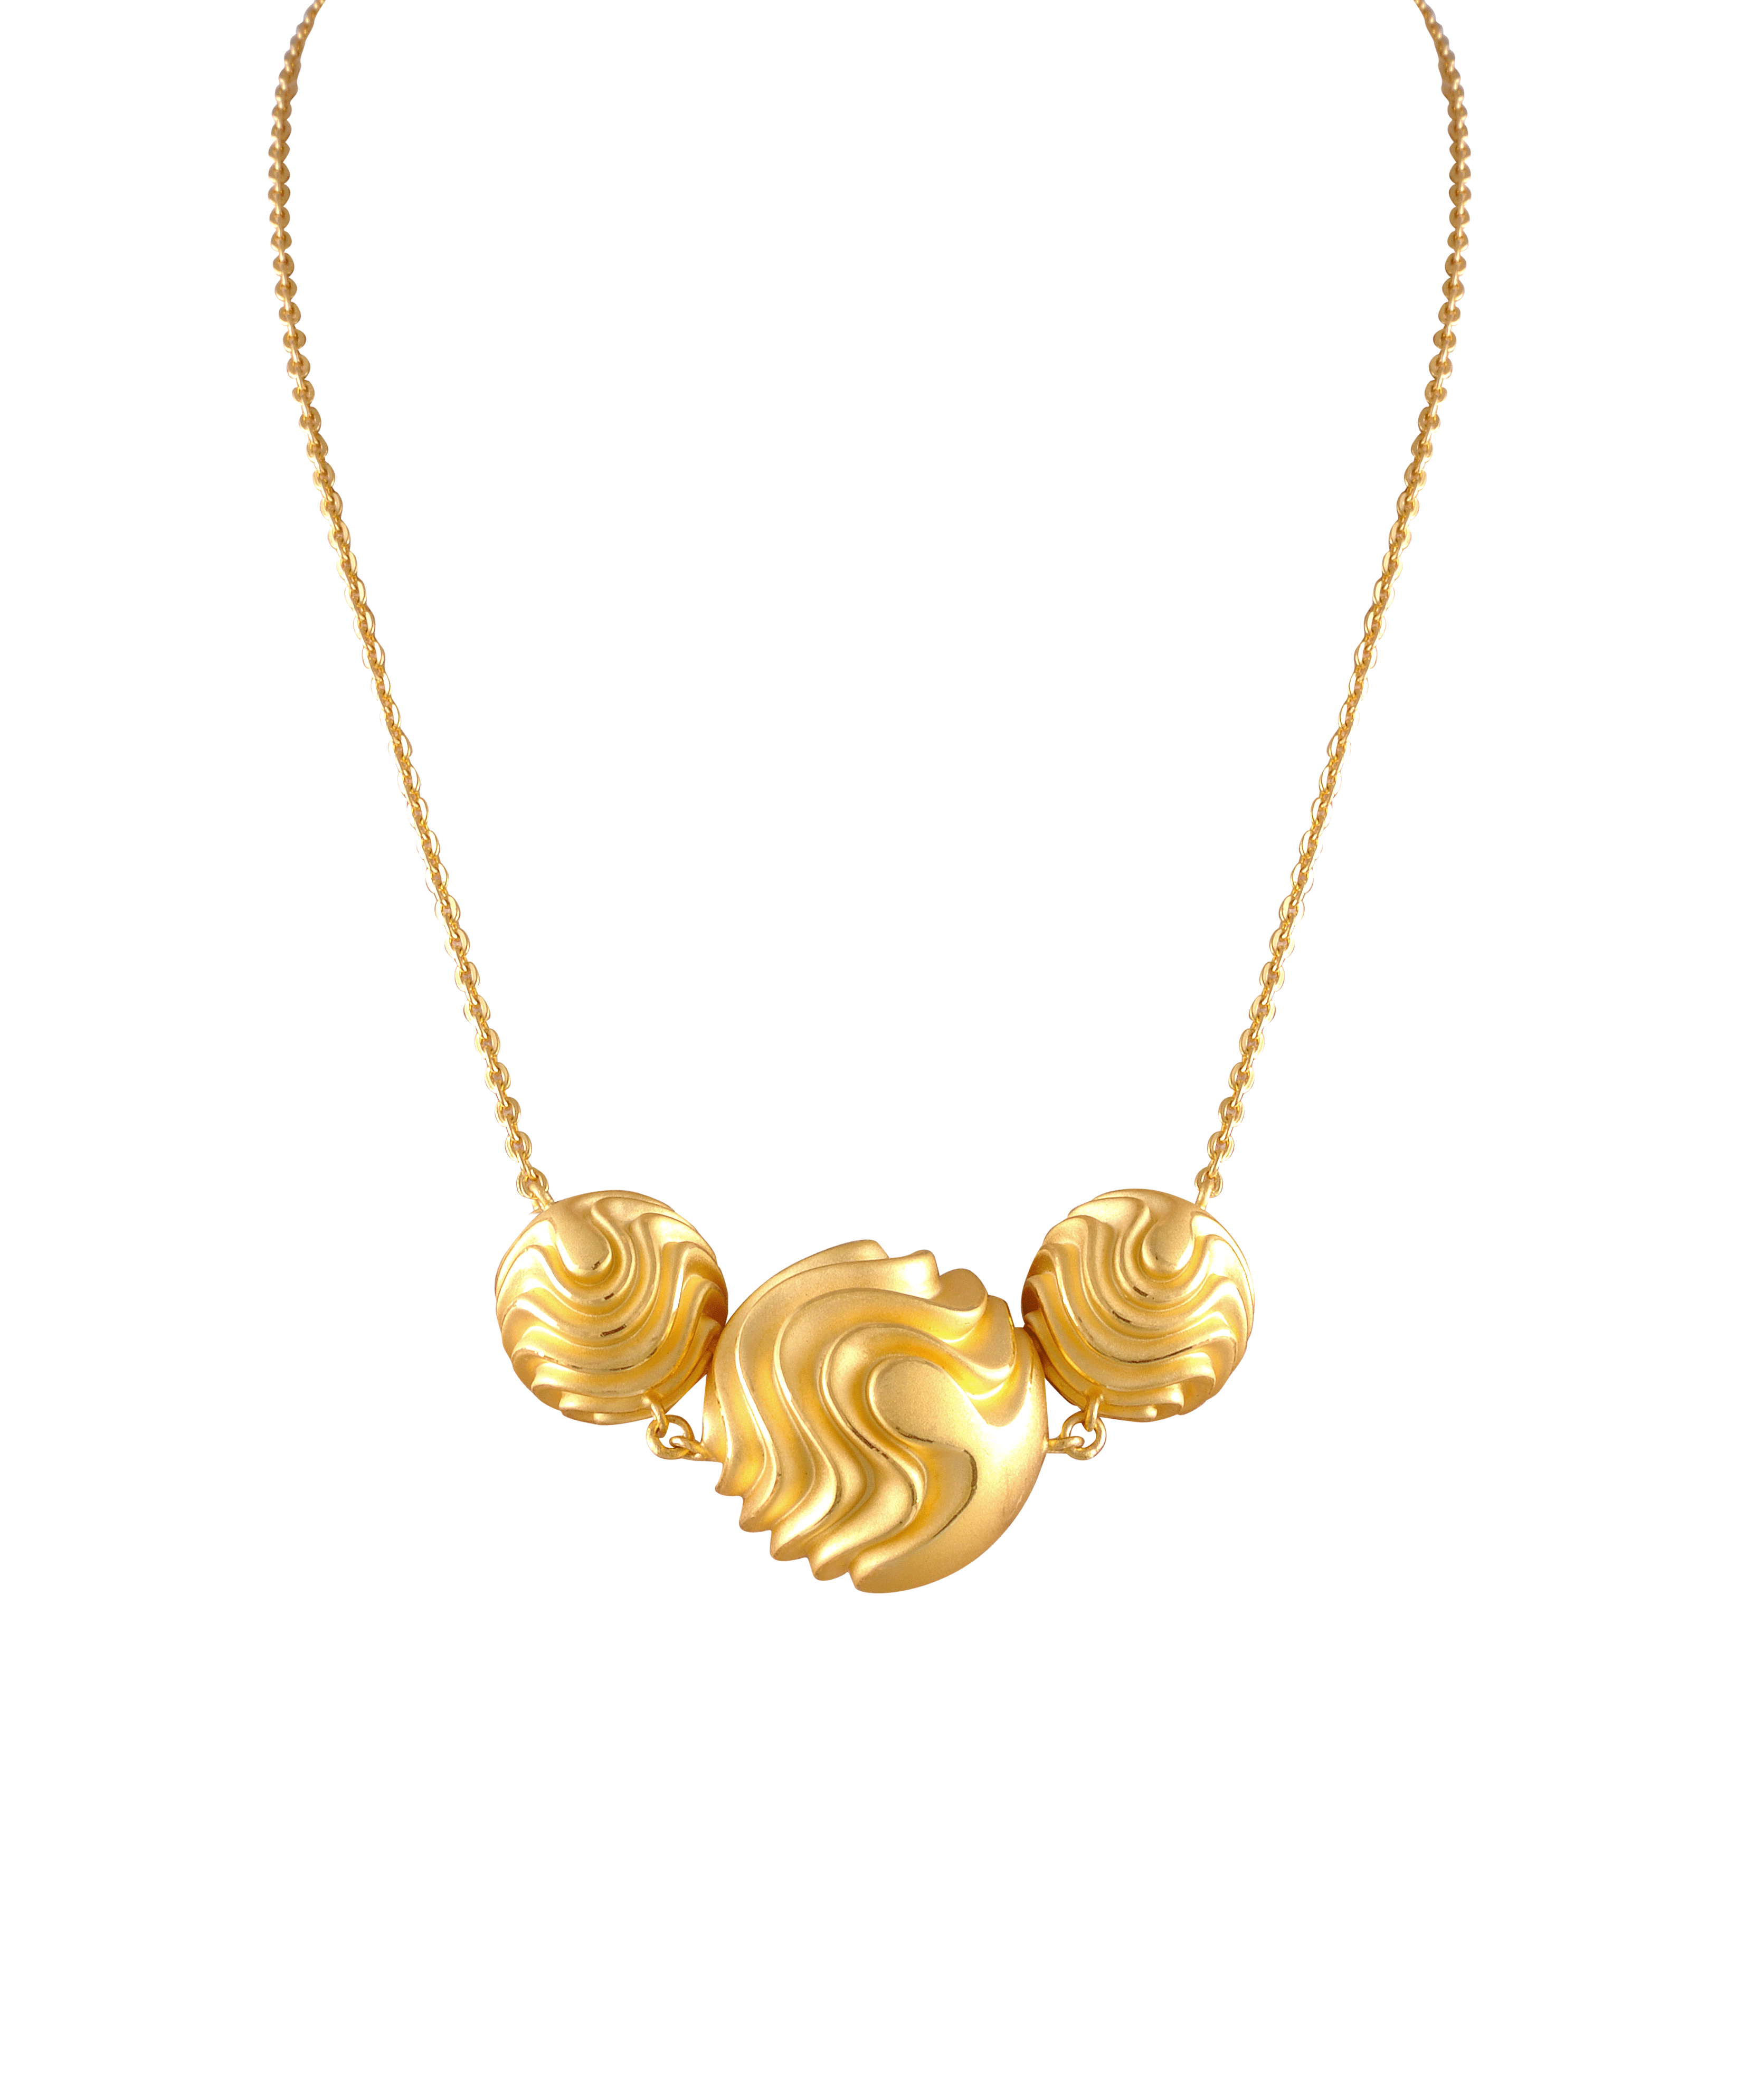 gold necklace with modern design jetha bhai zaveri jewellers by appointment gold necklace with modern design